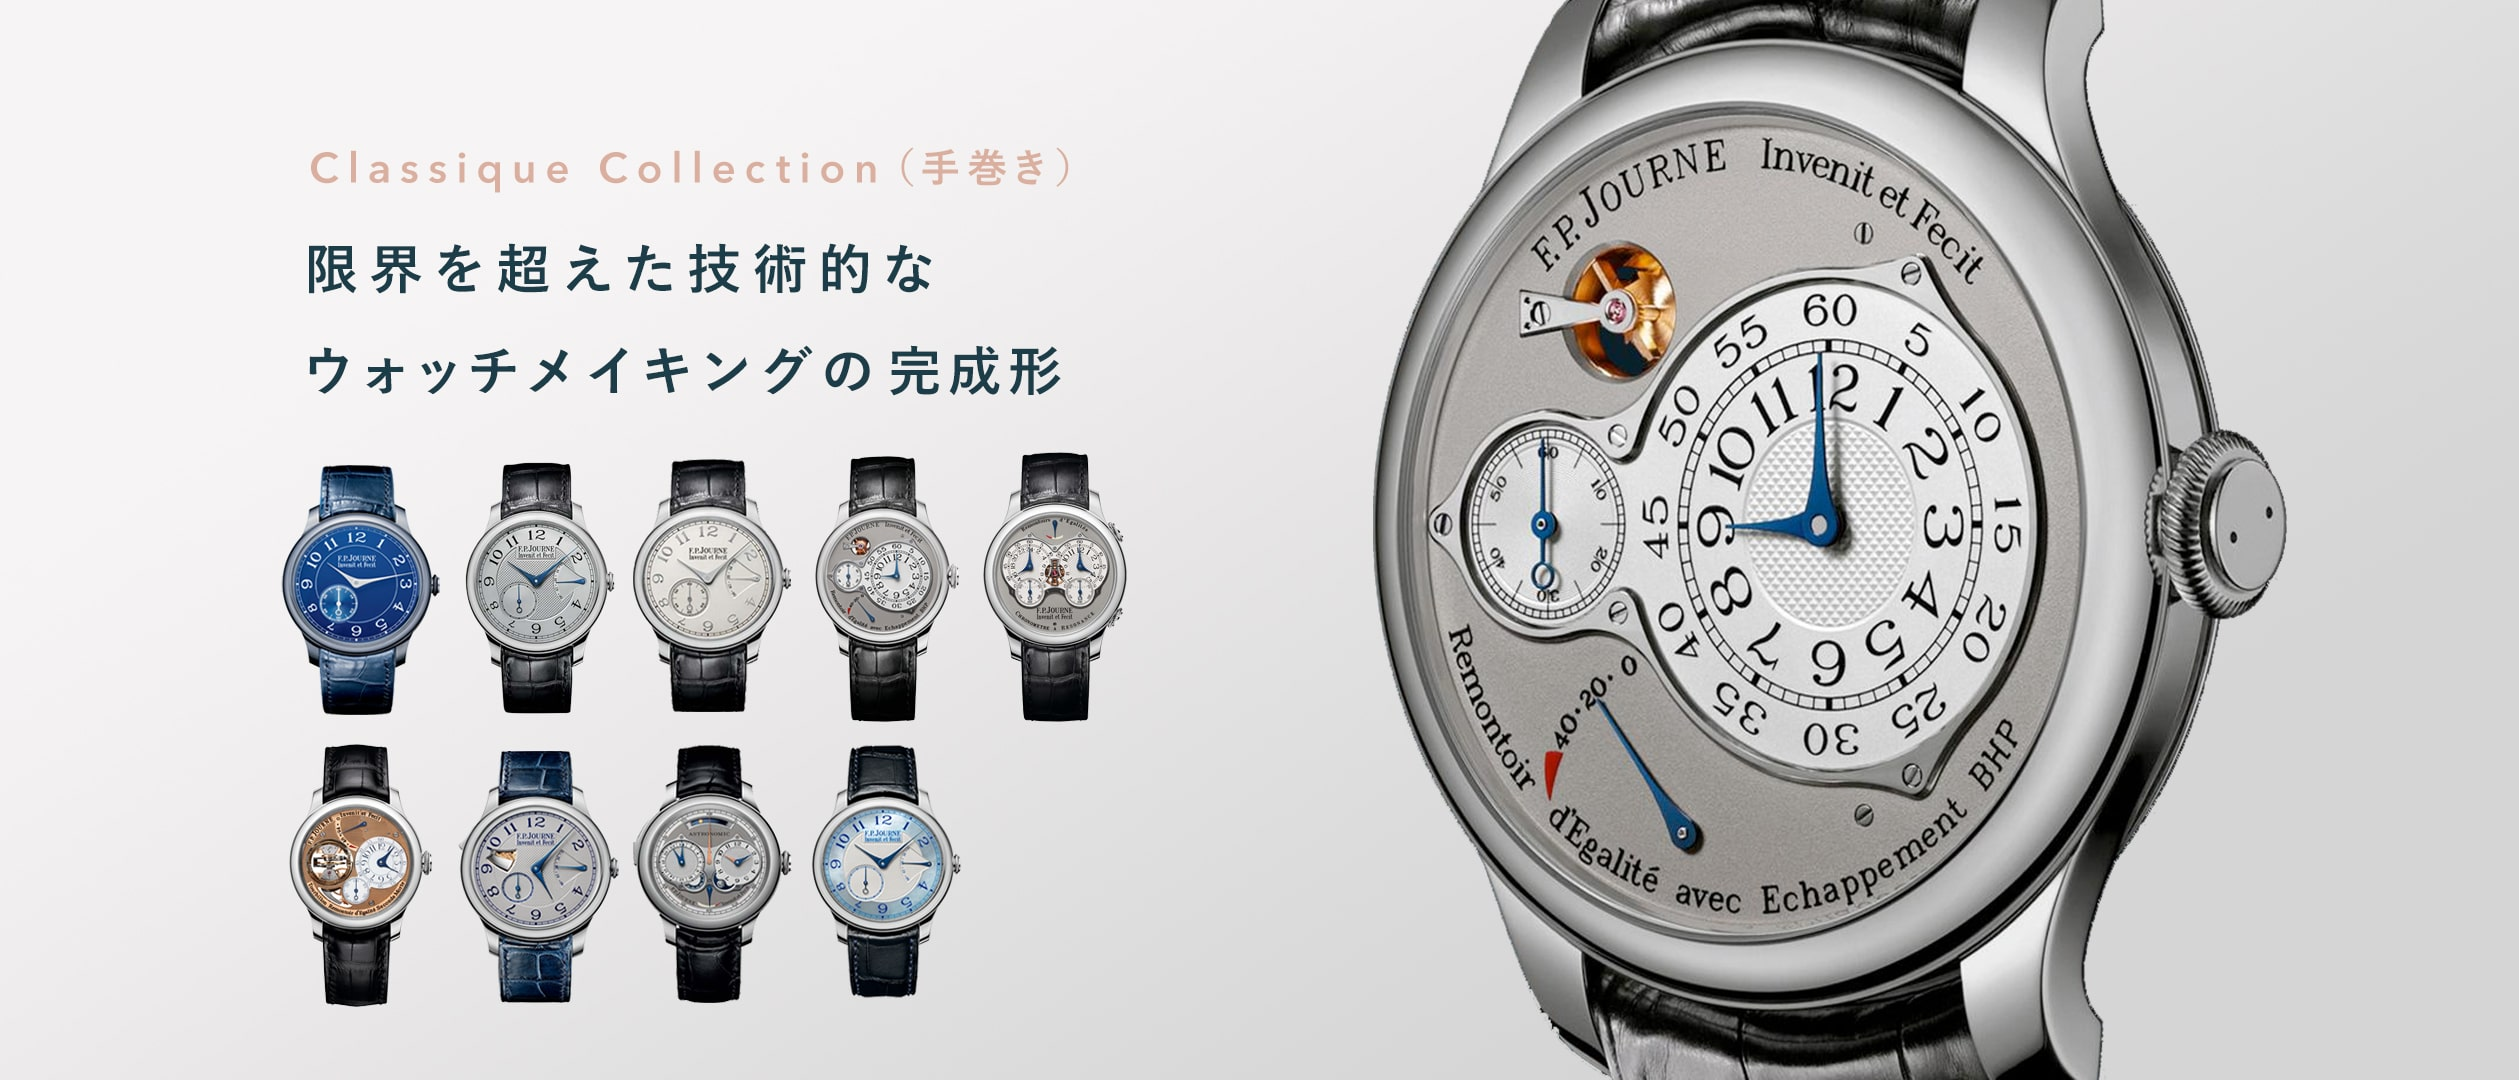 Classique Collection(手巻き) - 限界を超えた技術的なウォッチメイキングの完成形